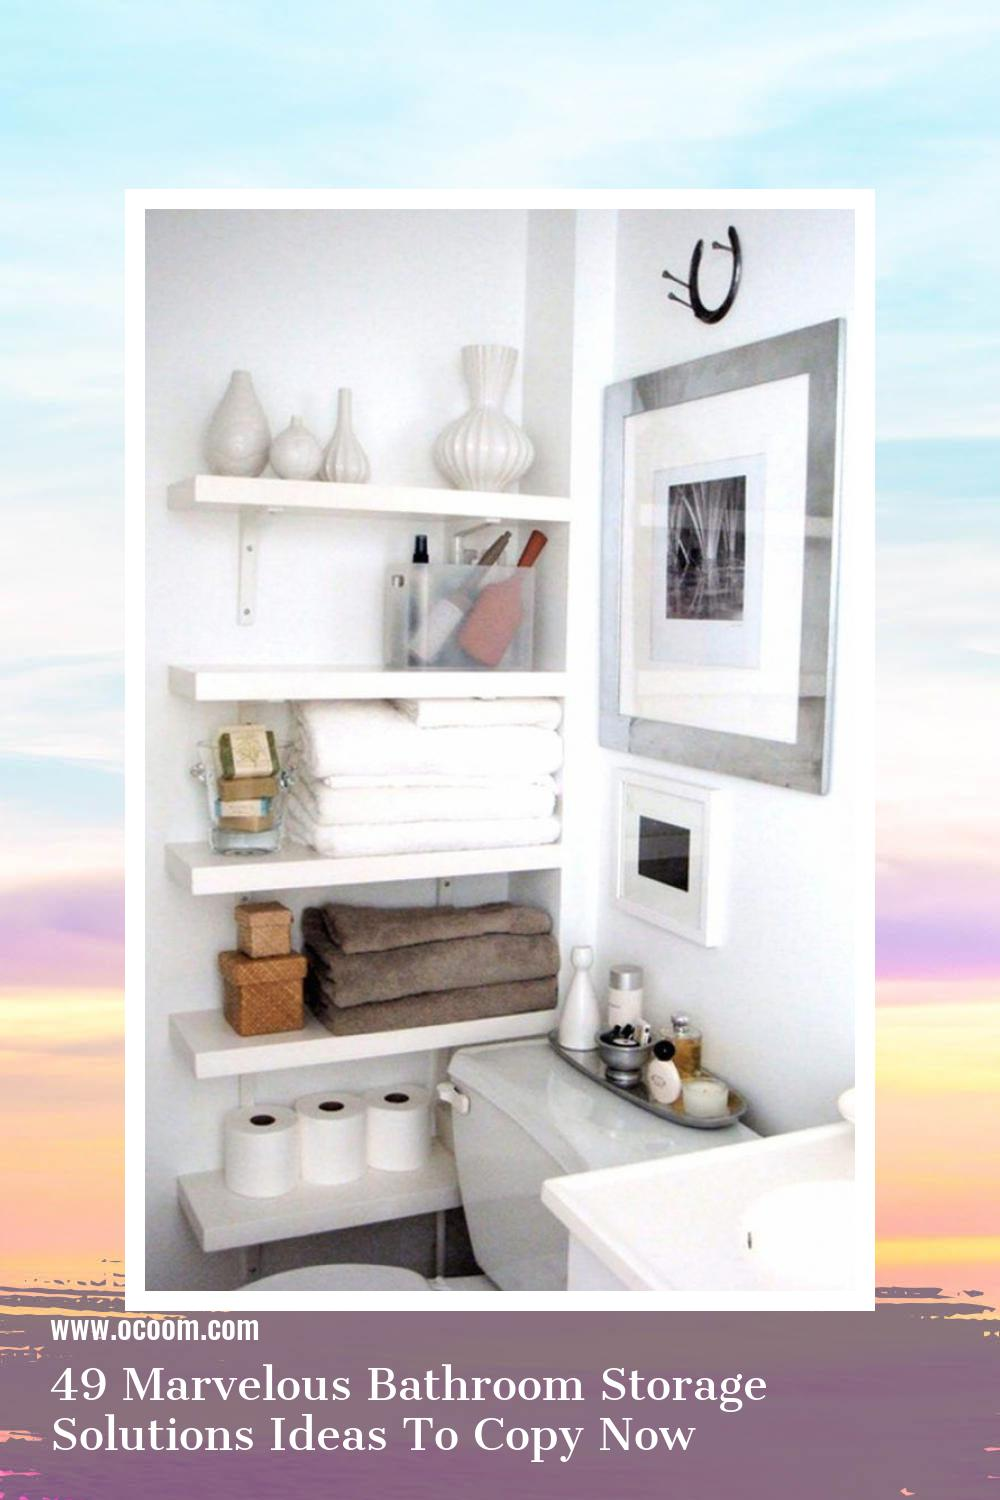 49 Marvelous Bathroom Storage Solutions Ideas To Copy Now 28